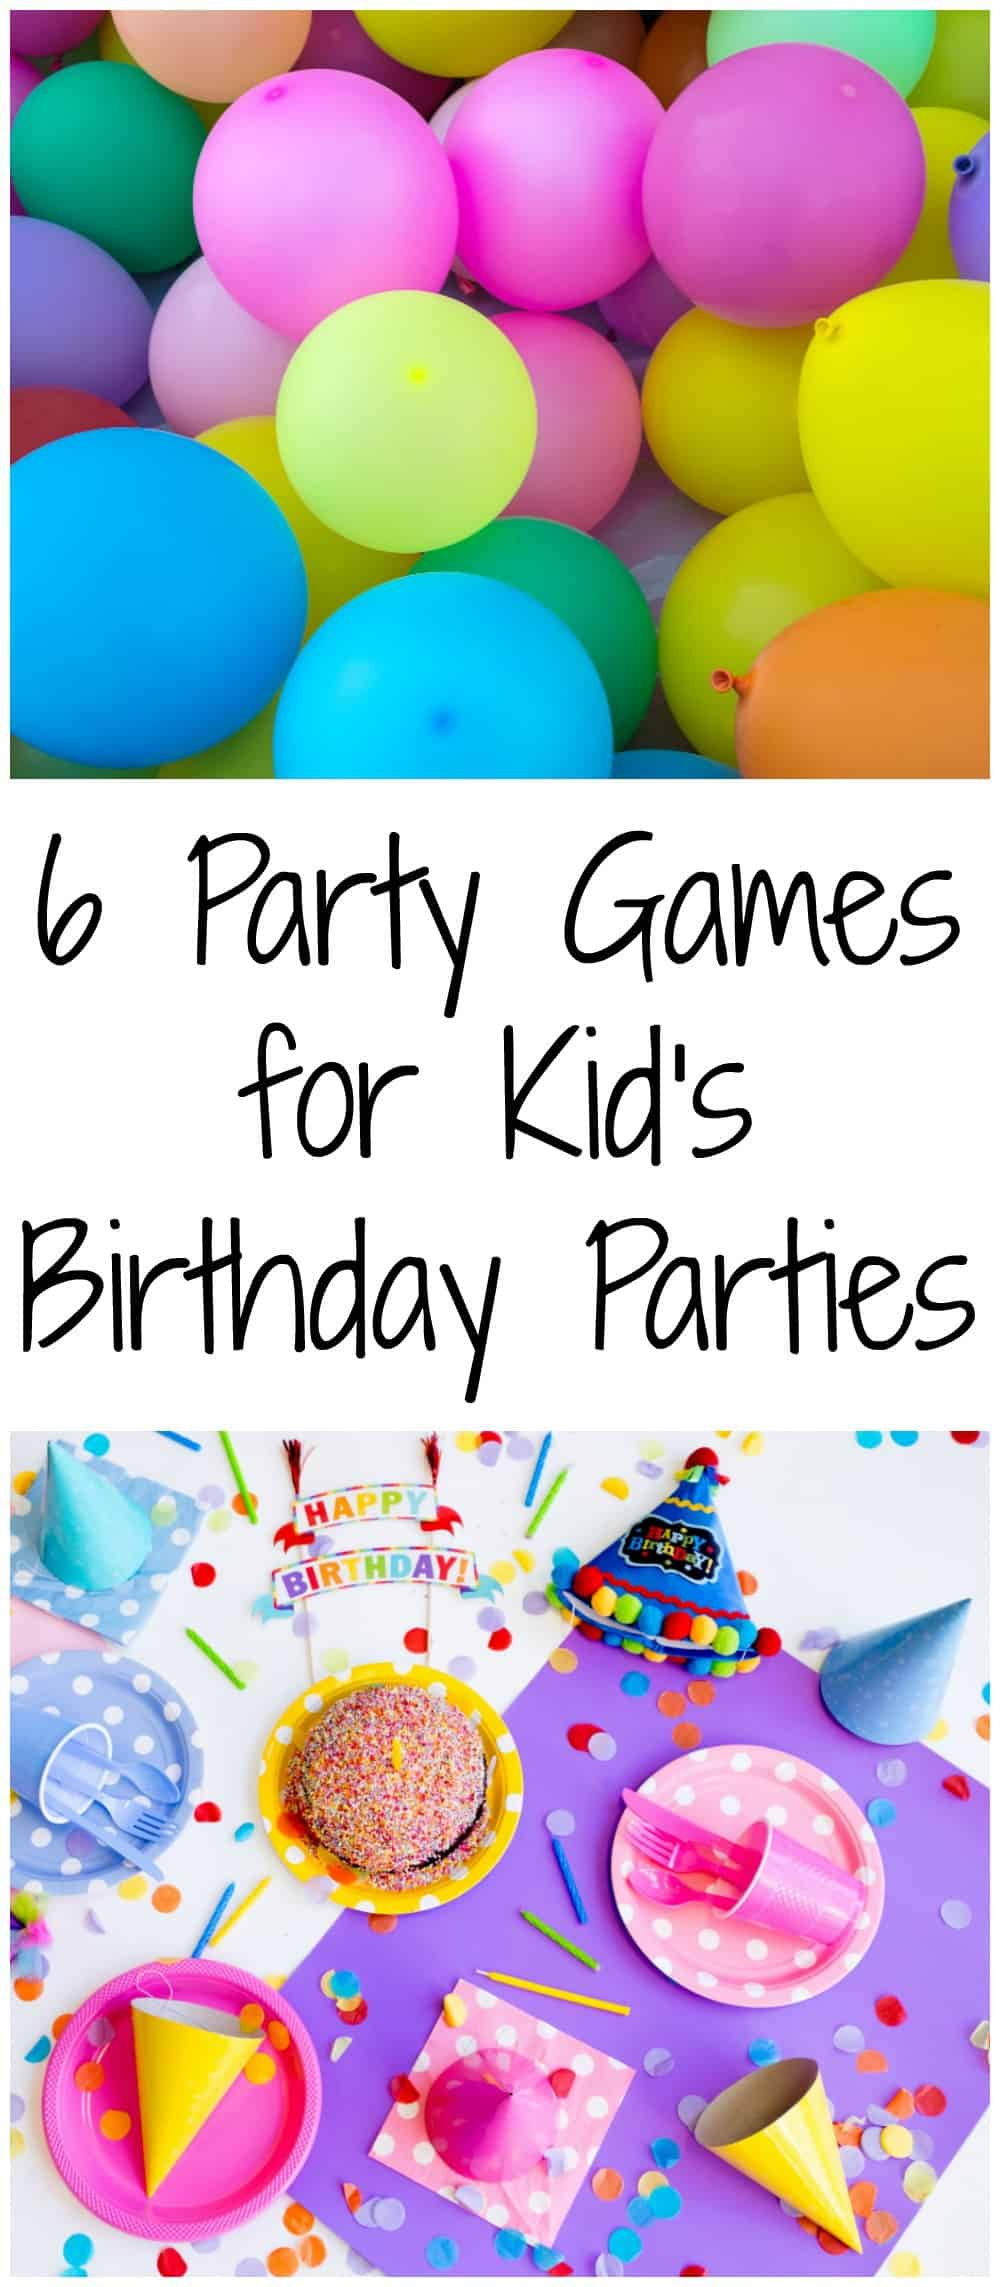 6 tried and true party games for kid's birthday parties!